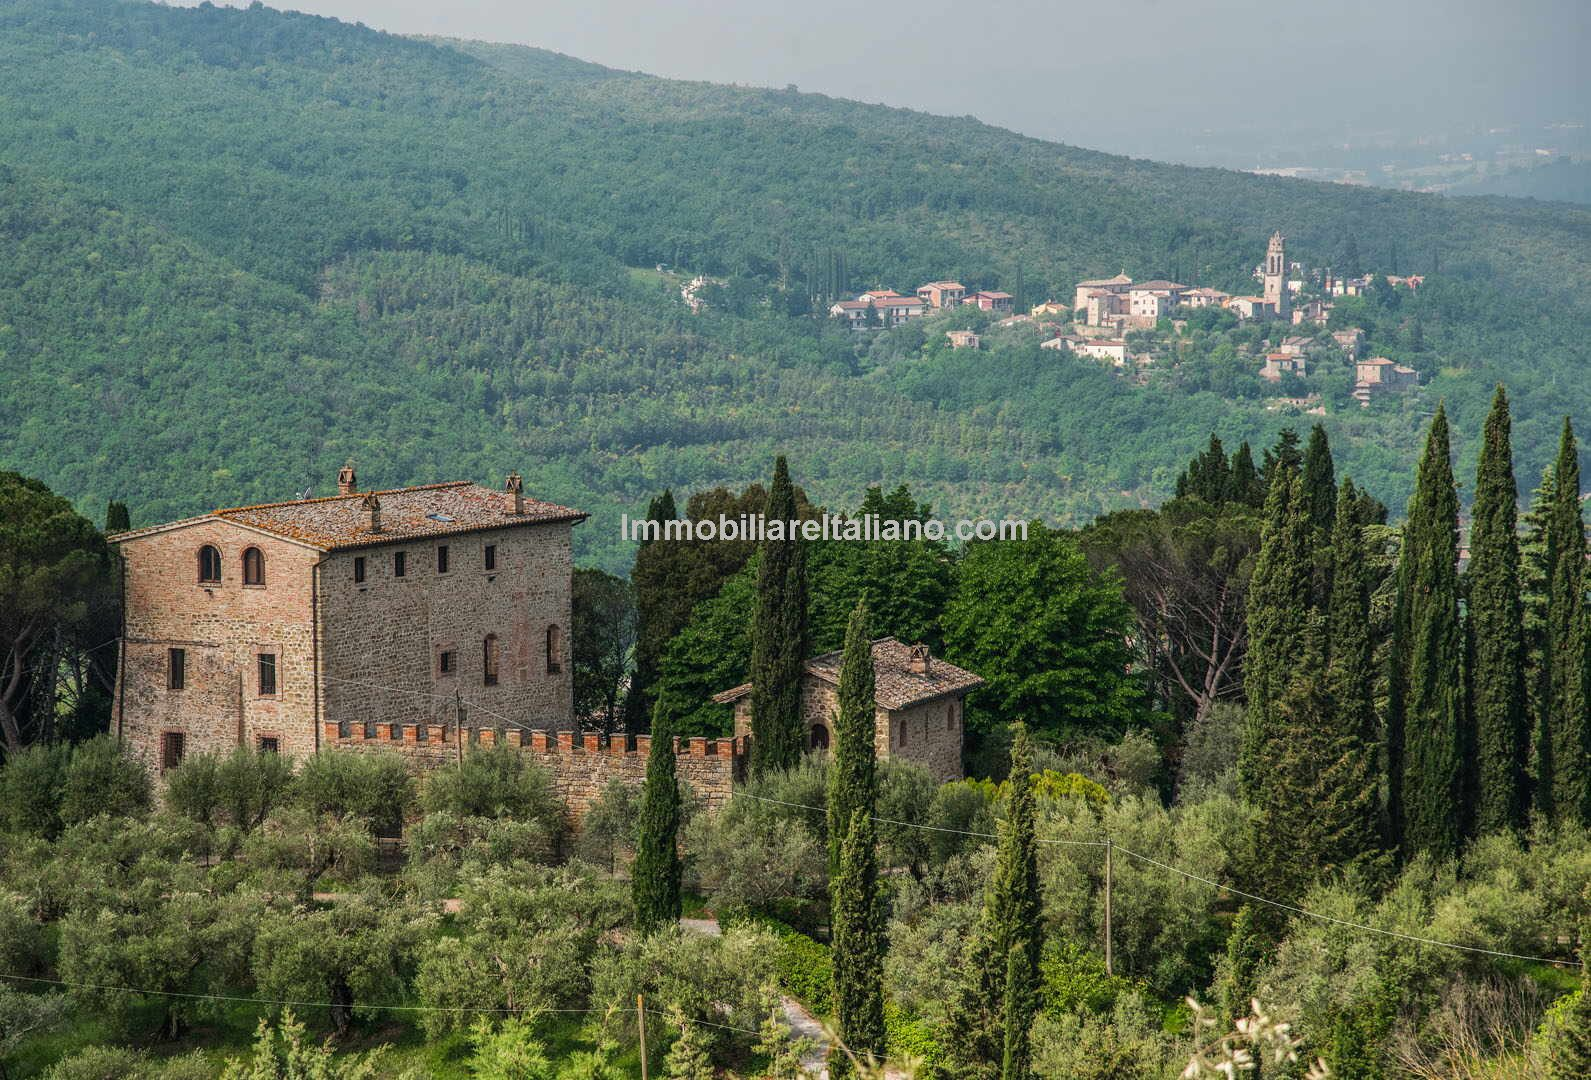 Historic Italian property For Sale - Watch Tower Perugia Umbria